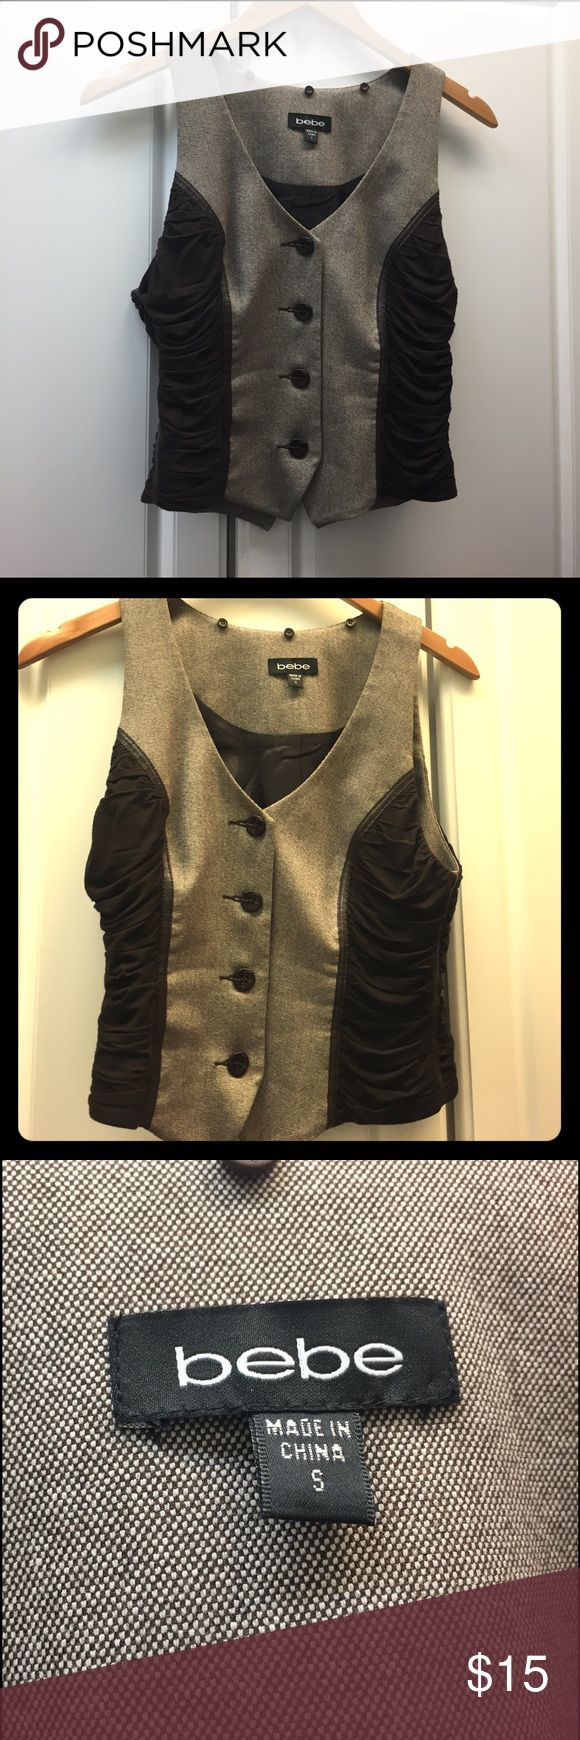 BEBE brown vest Worn 1 time now unfortunately it won't fit any more 😢 very cute in person would be a great addition to your wardrobe! If you have questions please ask bebe Tops